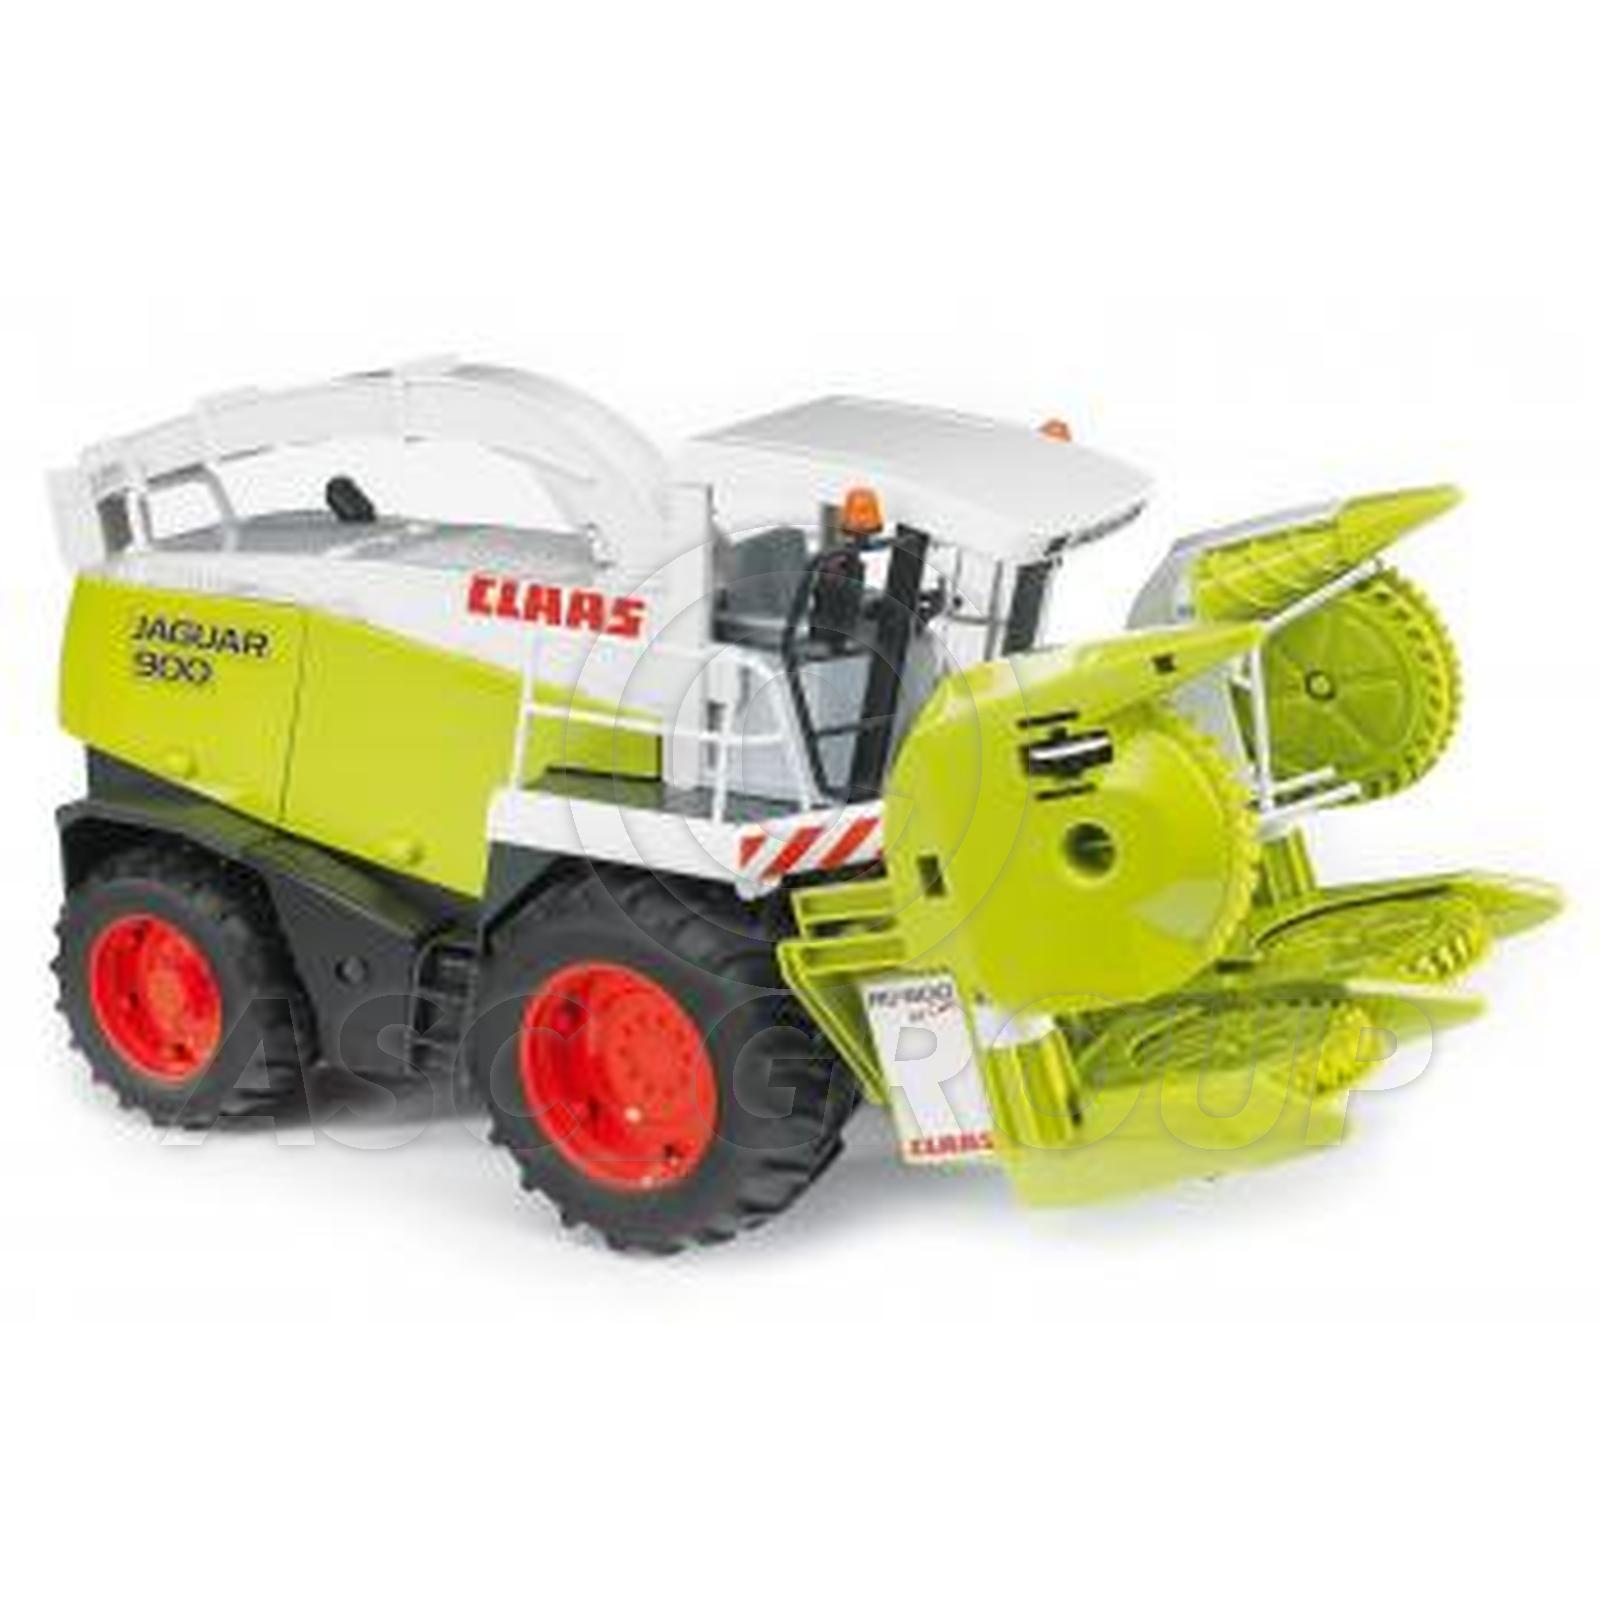 Bruder Claas Details About Bruder Toys 02131 Pro Series Claas Field Chopper Harvester Jaguar 900 1 16